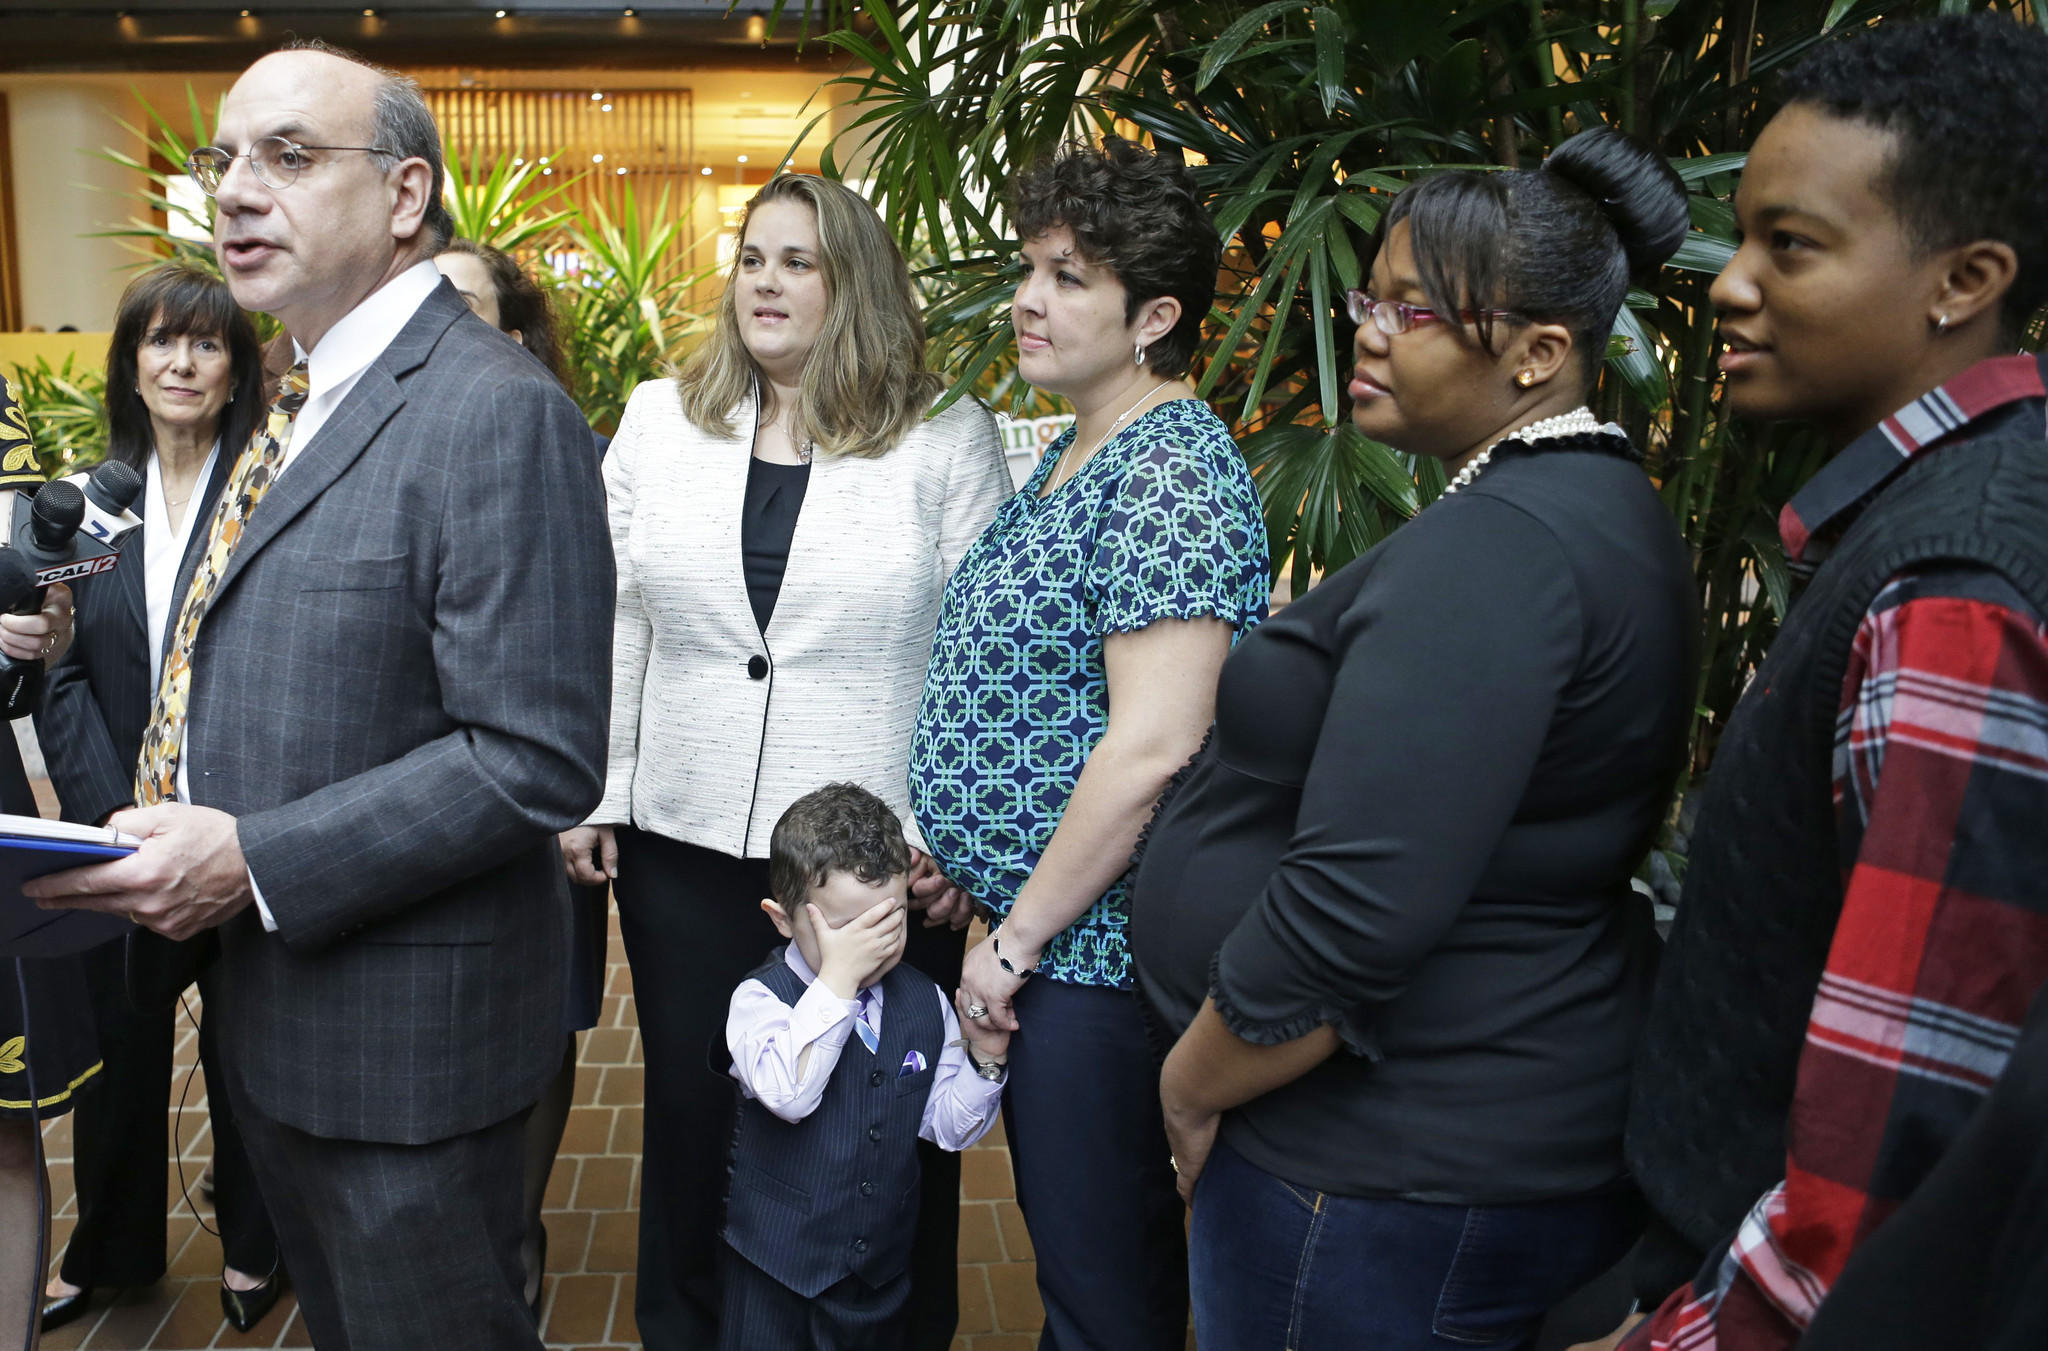 Attorney Al Gerhardstein, left, stands with several same-sex couples at an April 4 news conference in Cincinnati.